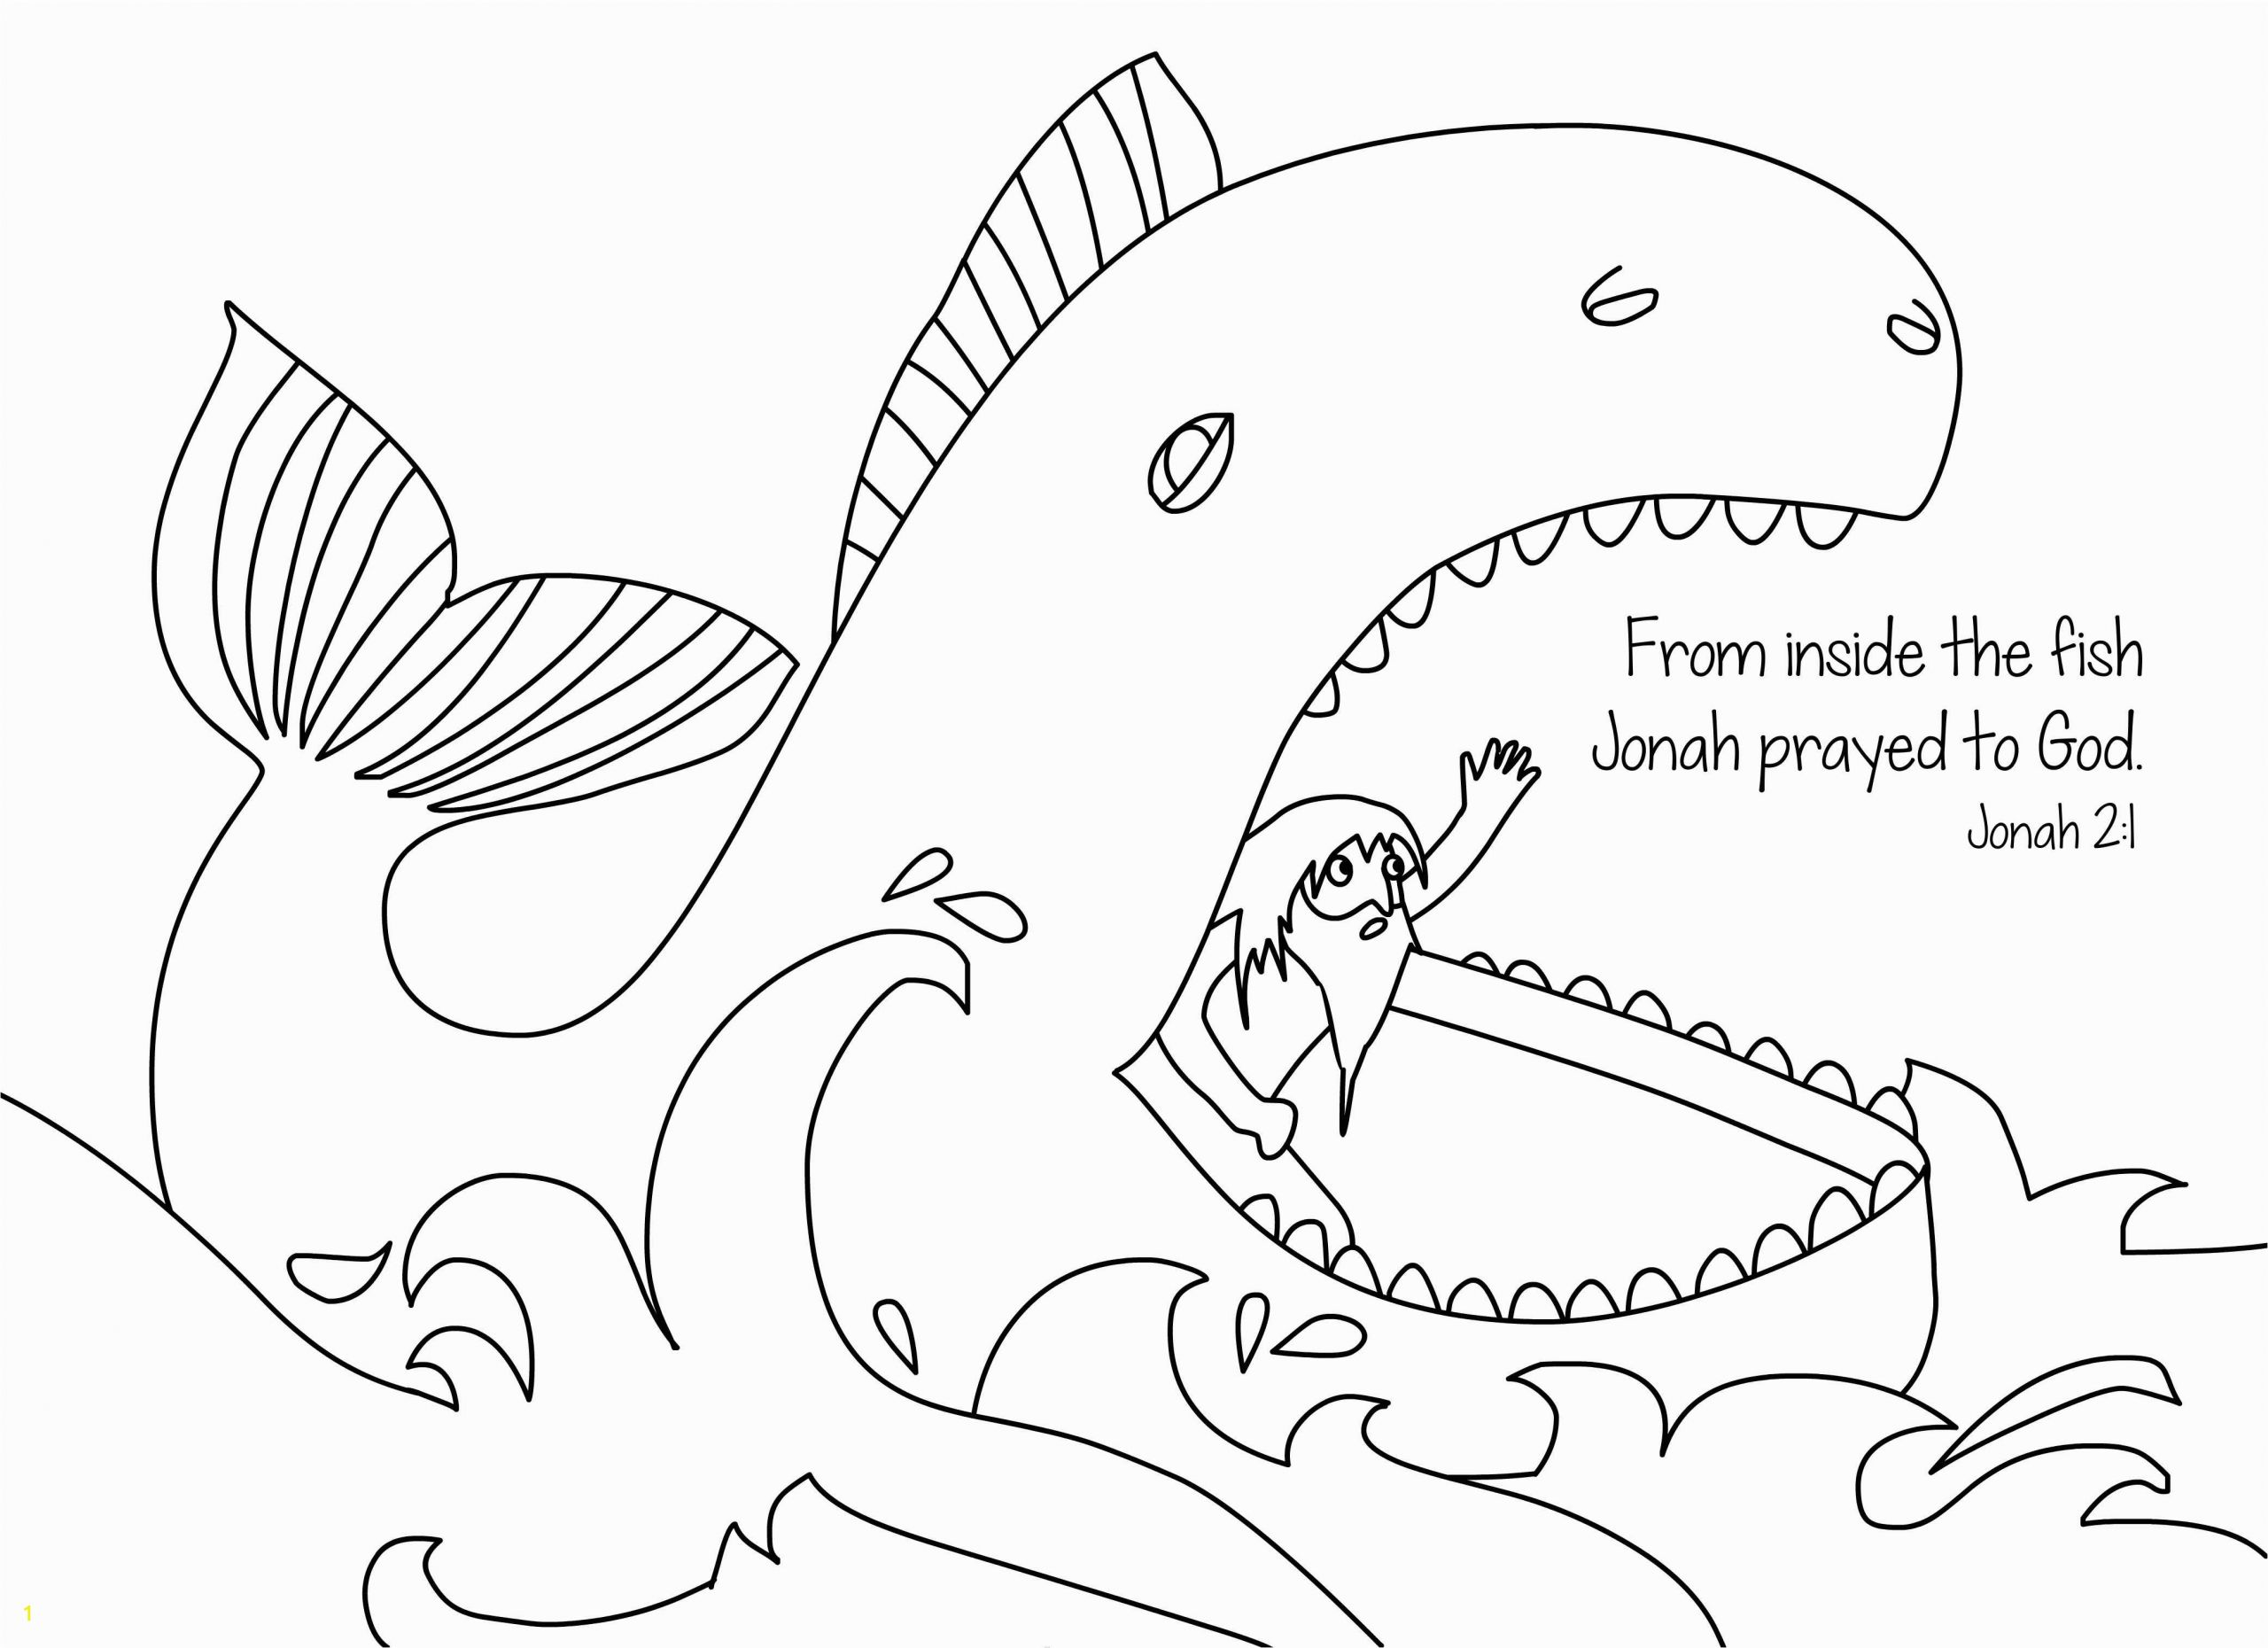 jonah and the whale coloring page